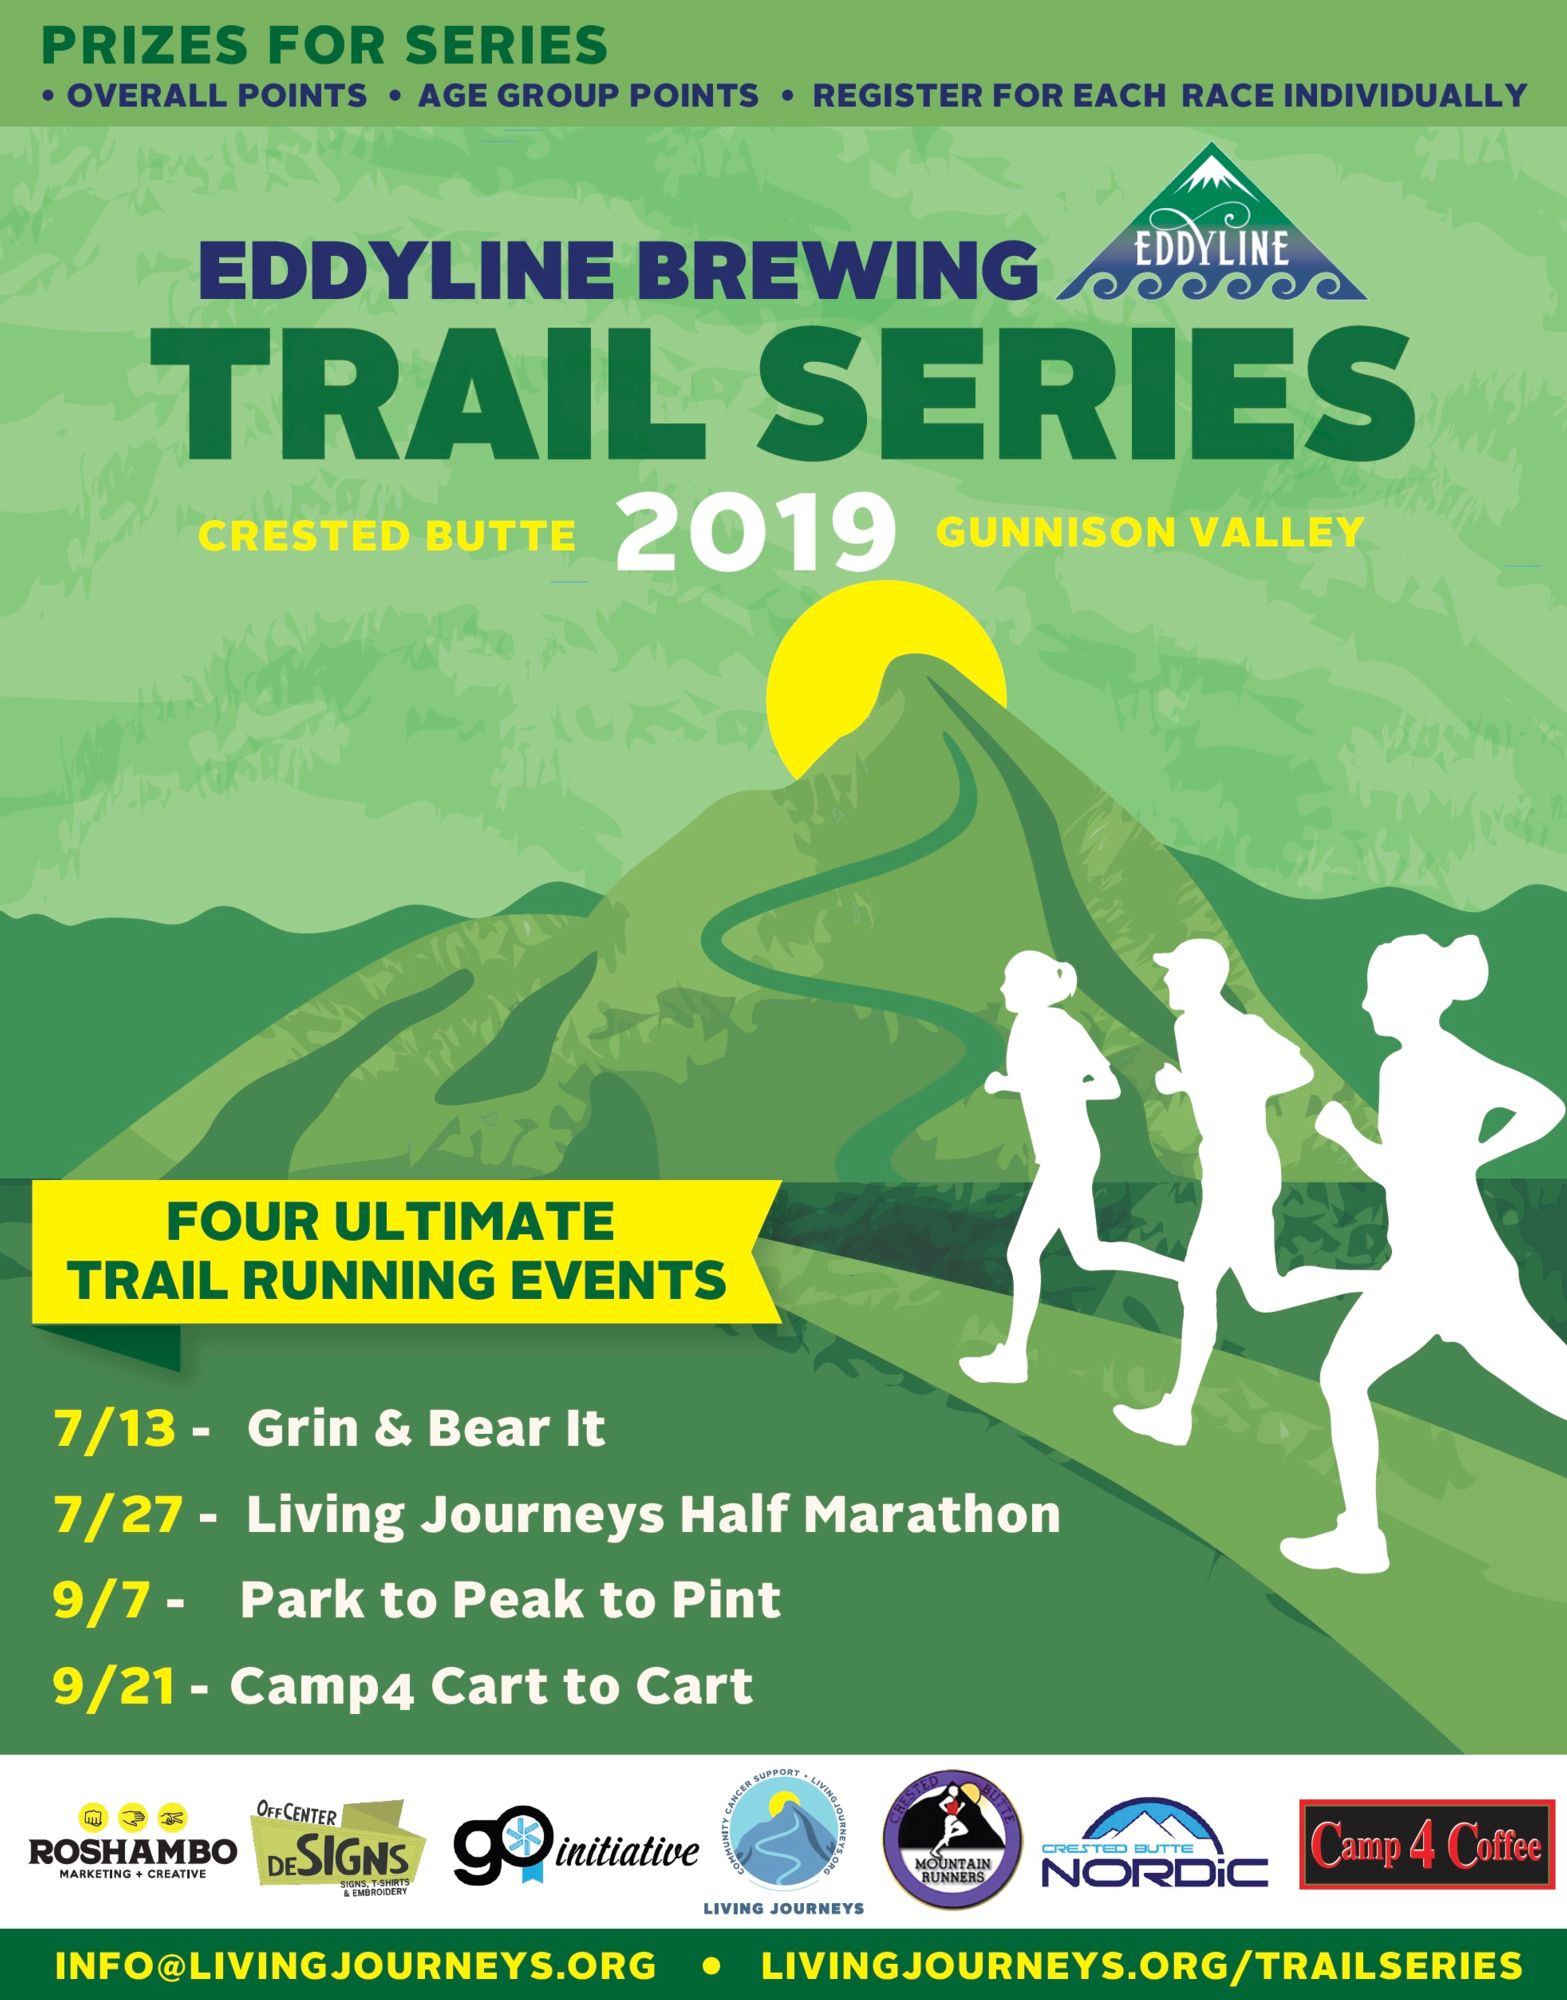 2019 Schedule of Trail Runs - CB Mountain Runners